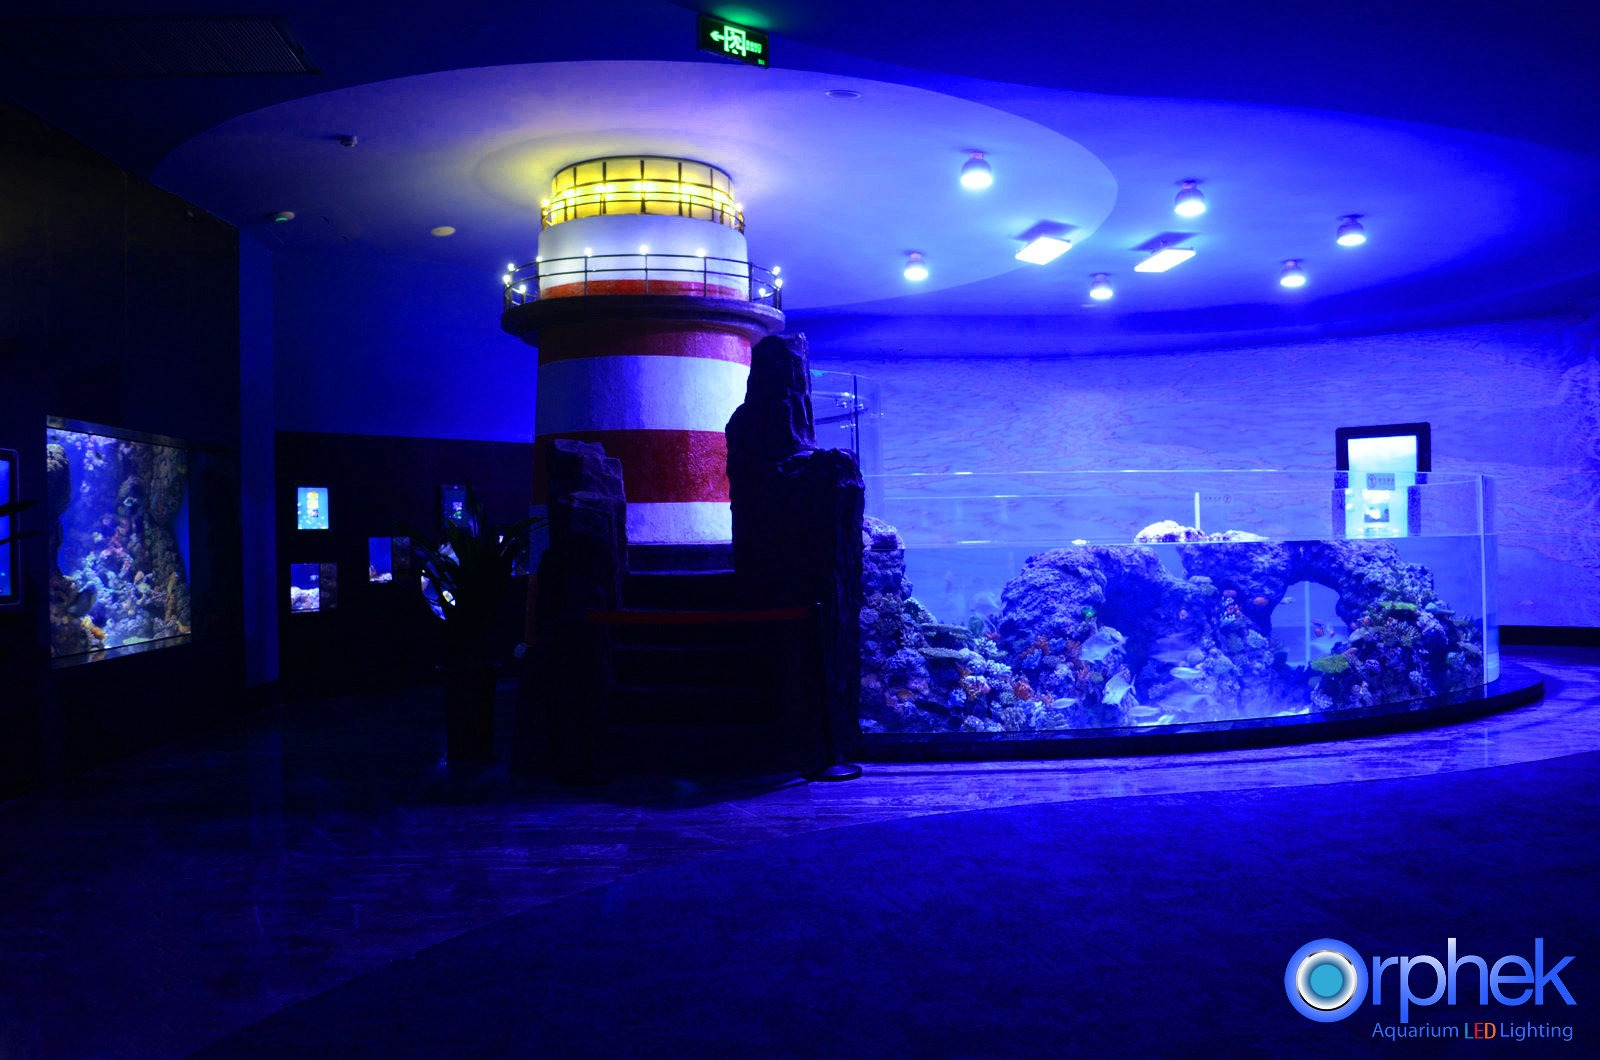 chengdu-public-aquarium-LED-lighting-tropical -sea-zone-15